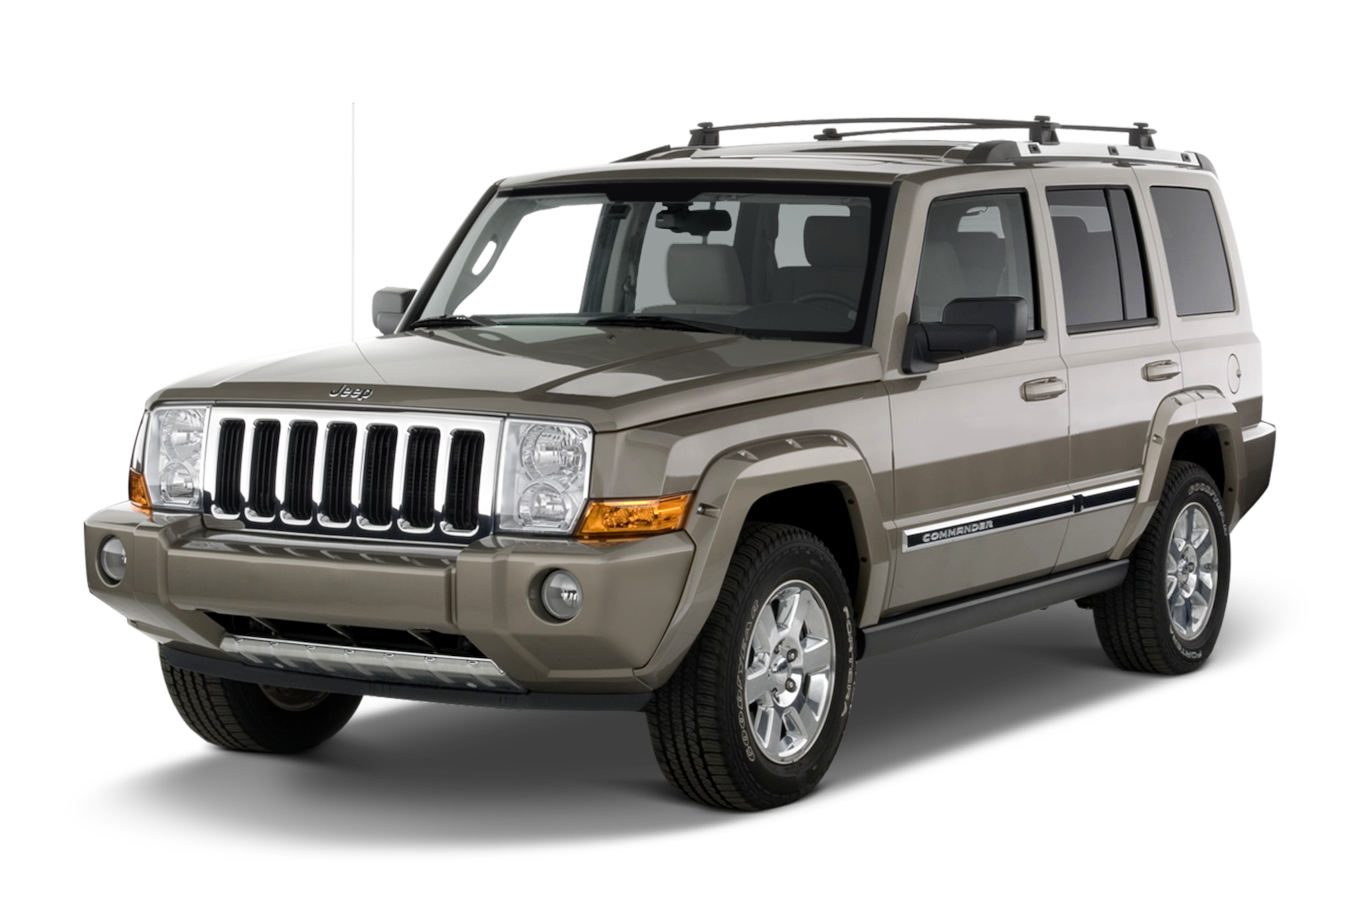 jeep commander reviews and rating motor trend #22819